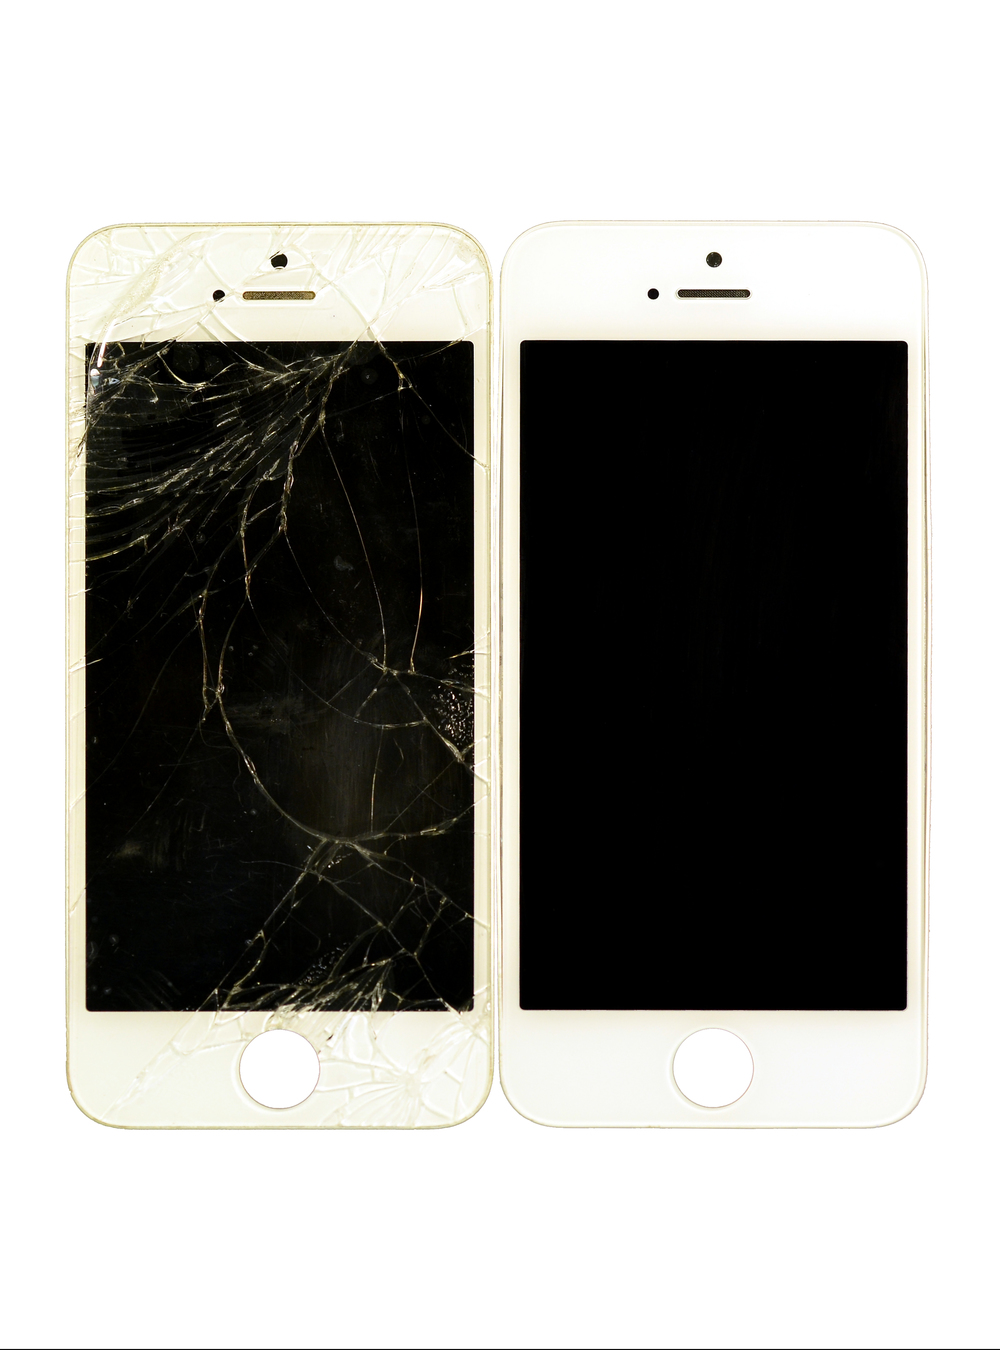 Before and after - iPhone screens replacements are our bread and butter at iFixOmaha